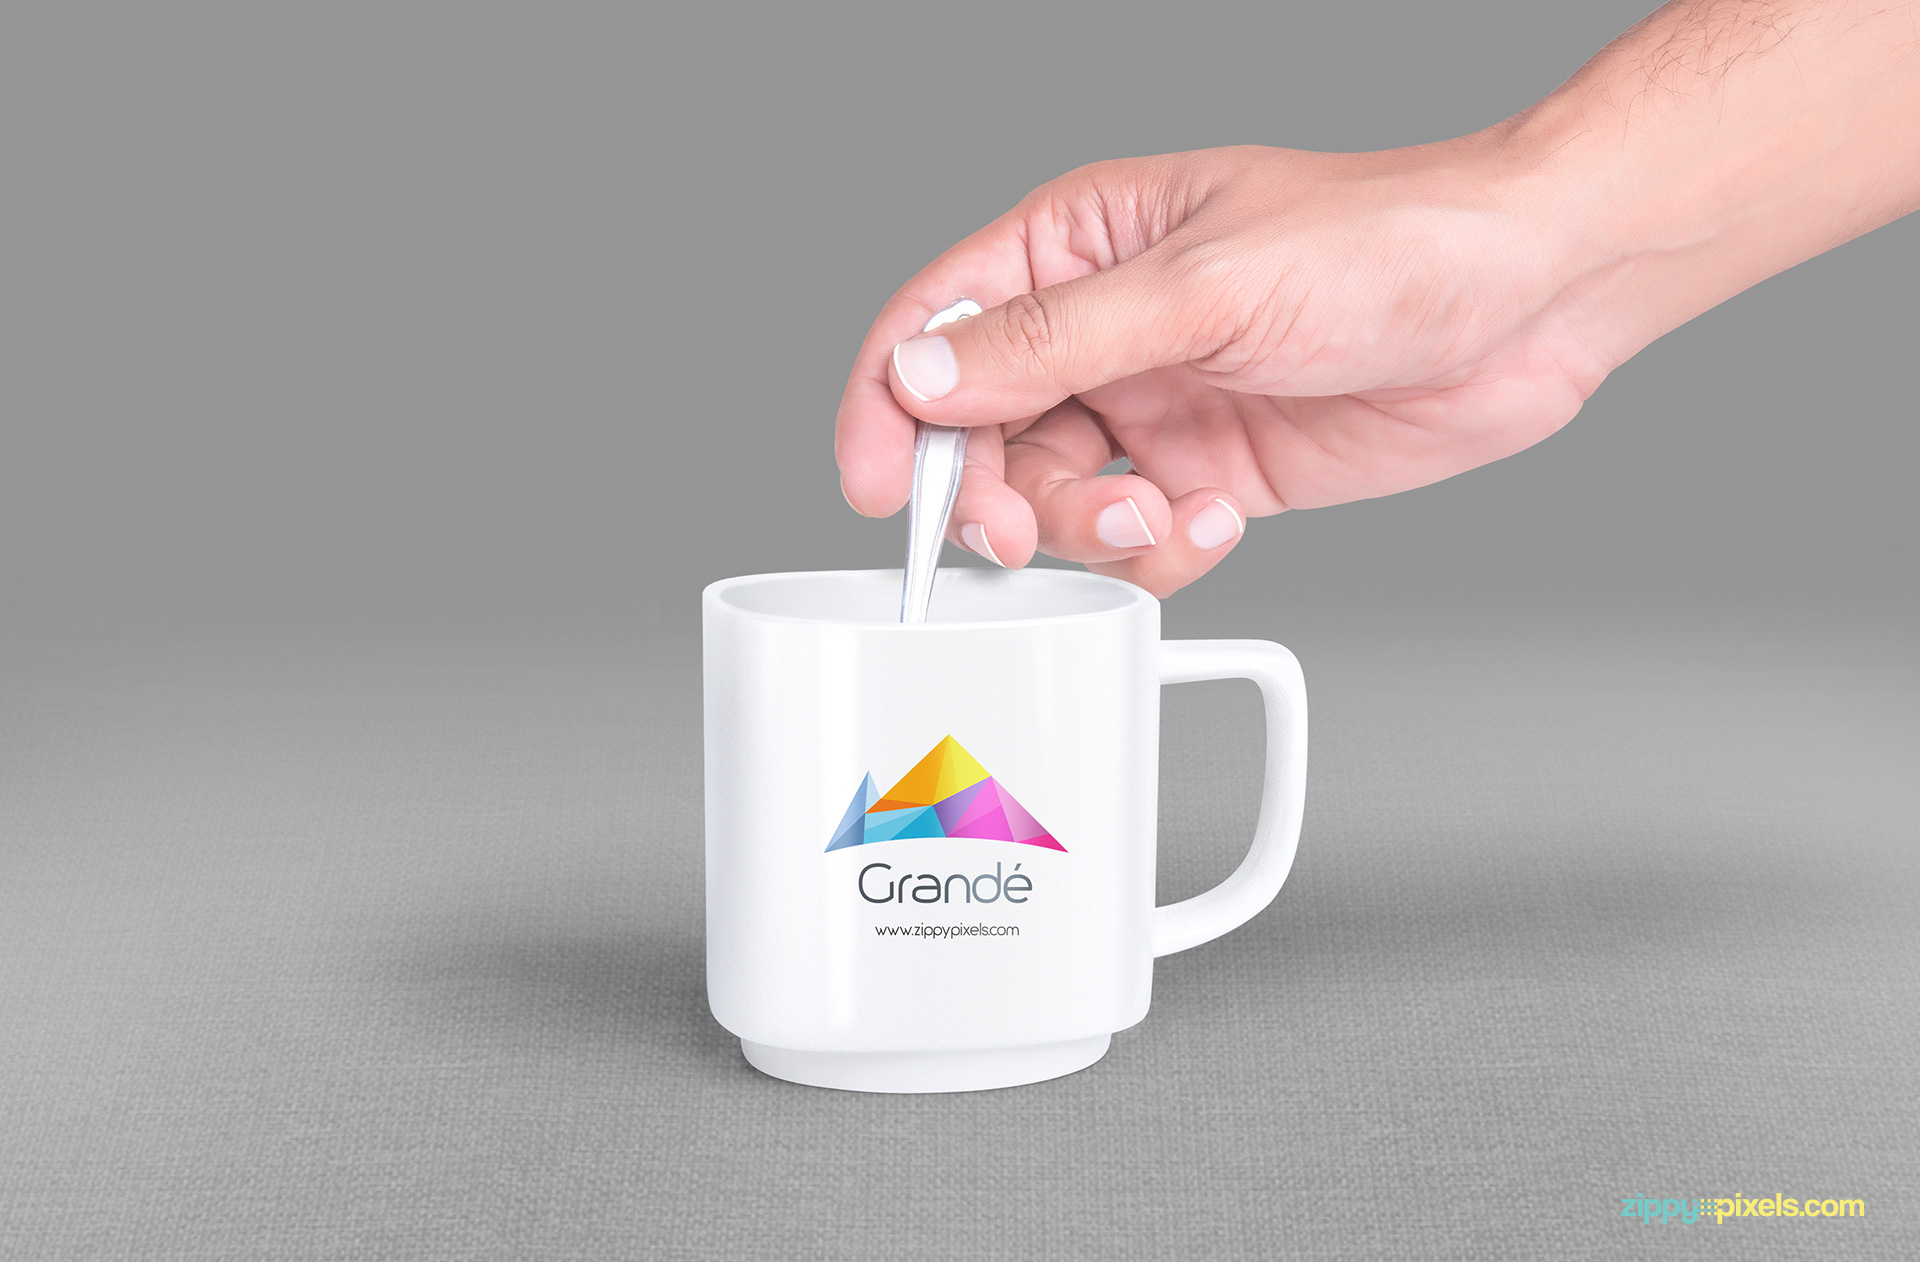 Easy to use free psd mug mockup.